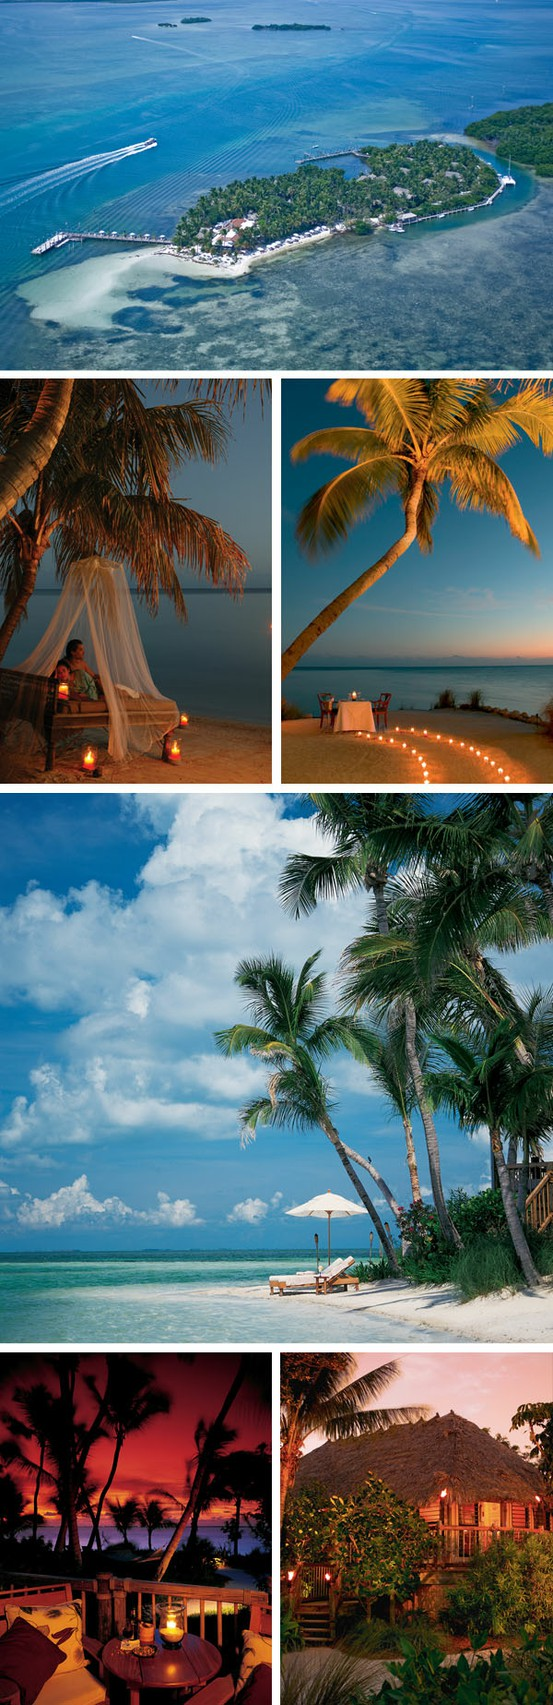 Little Palm Island, Florida This has been my destination